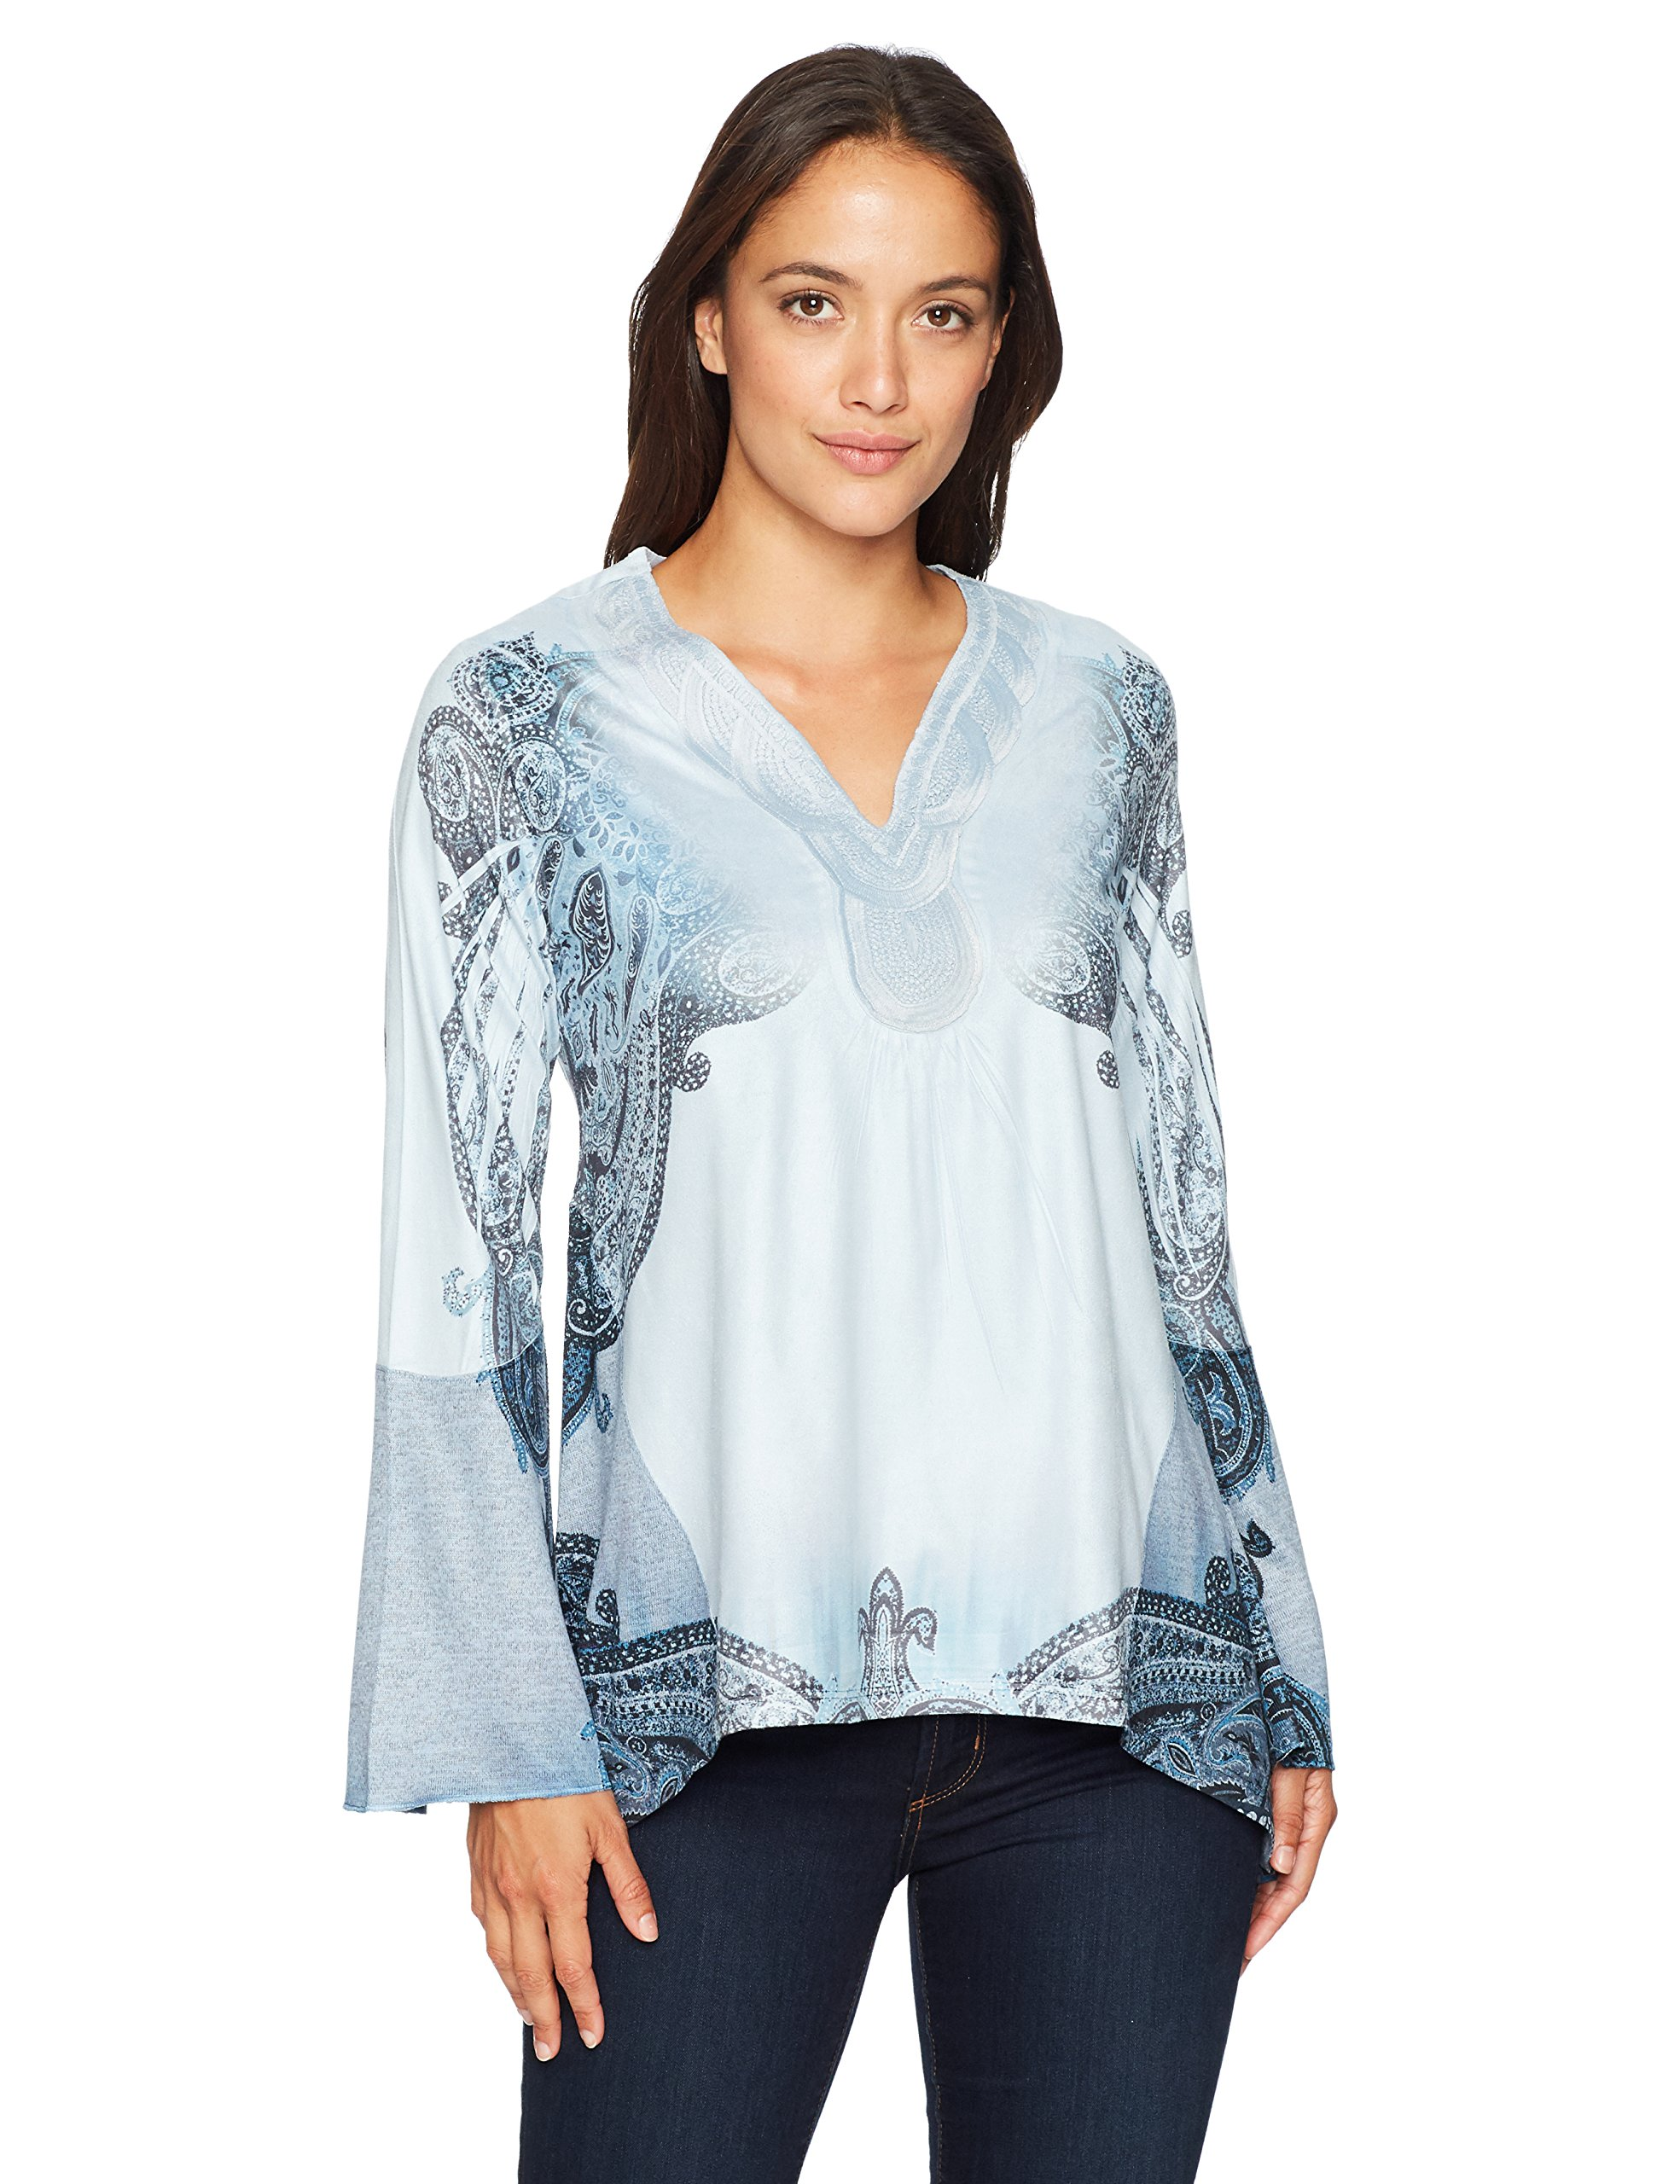 OneWorld Women's Petite Long Sleeve Faux Suede Printed Top with V-Neck, Frozen Paisley/Winter Sky, PS